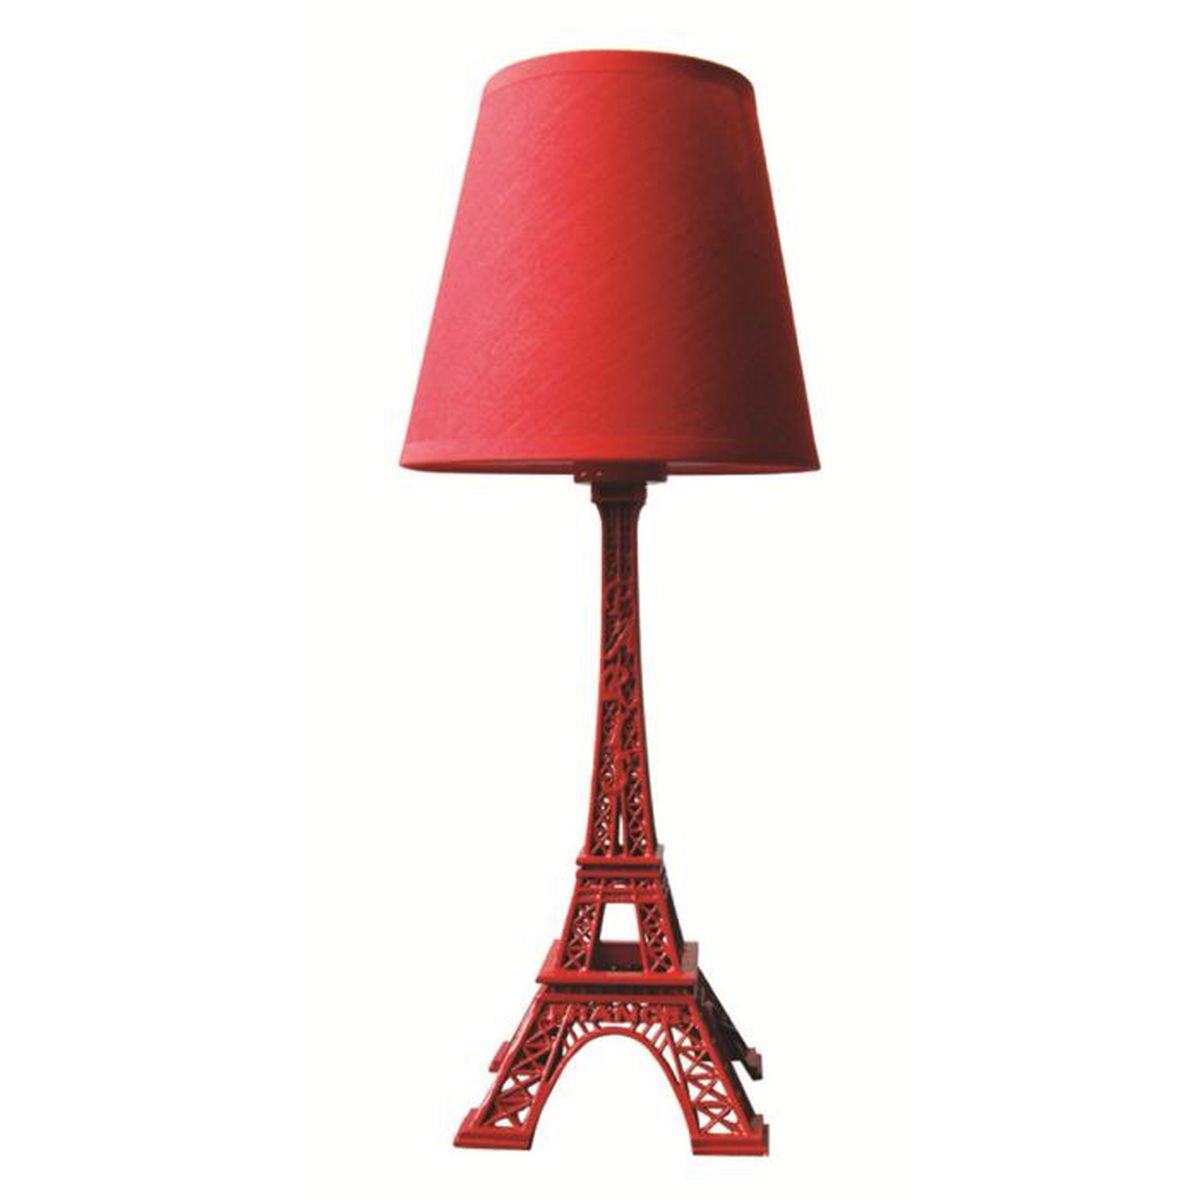 lampe tour eiffel rouge hauteur 38 cm achat vente. Black Bedroom Furniture Sets. Home Design Ideas